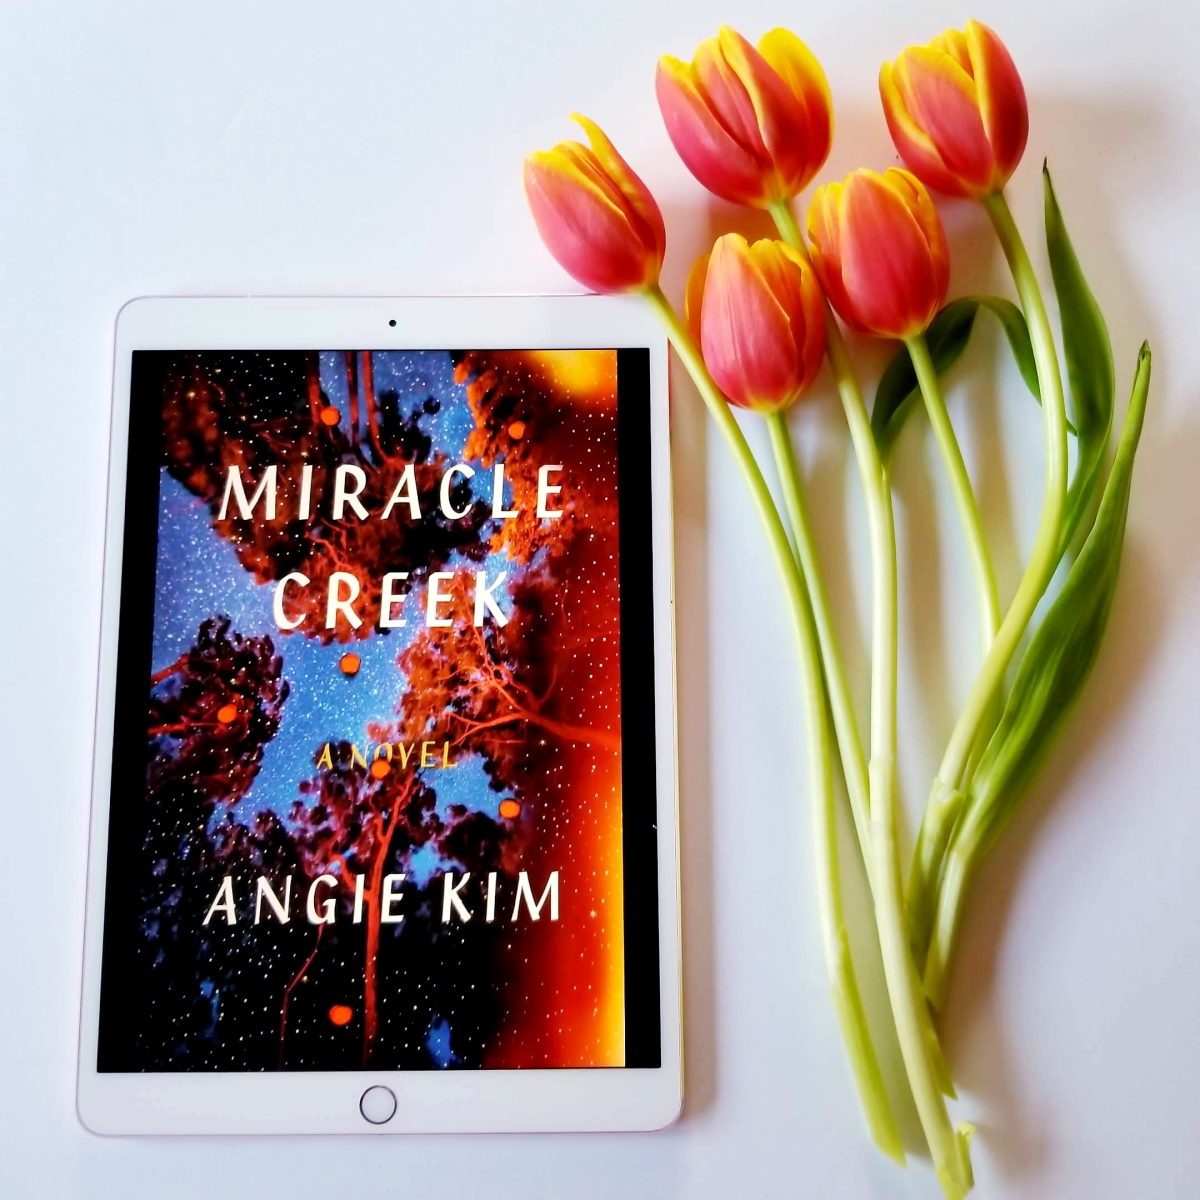 Miracle Creek by Angie Kim #bookreview #tarheelreader #thrmiraclecreek @angiekimwriter @fsgbooks #miraclecreek